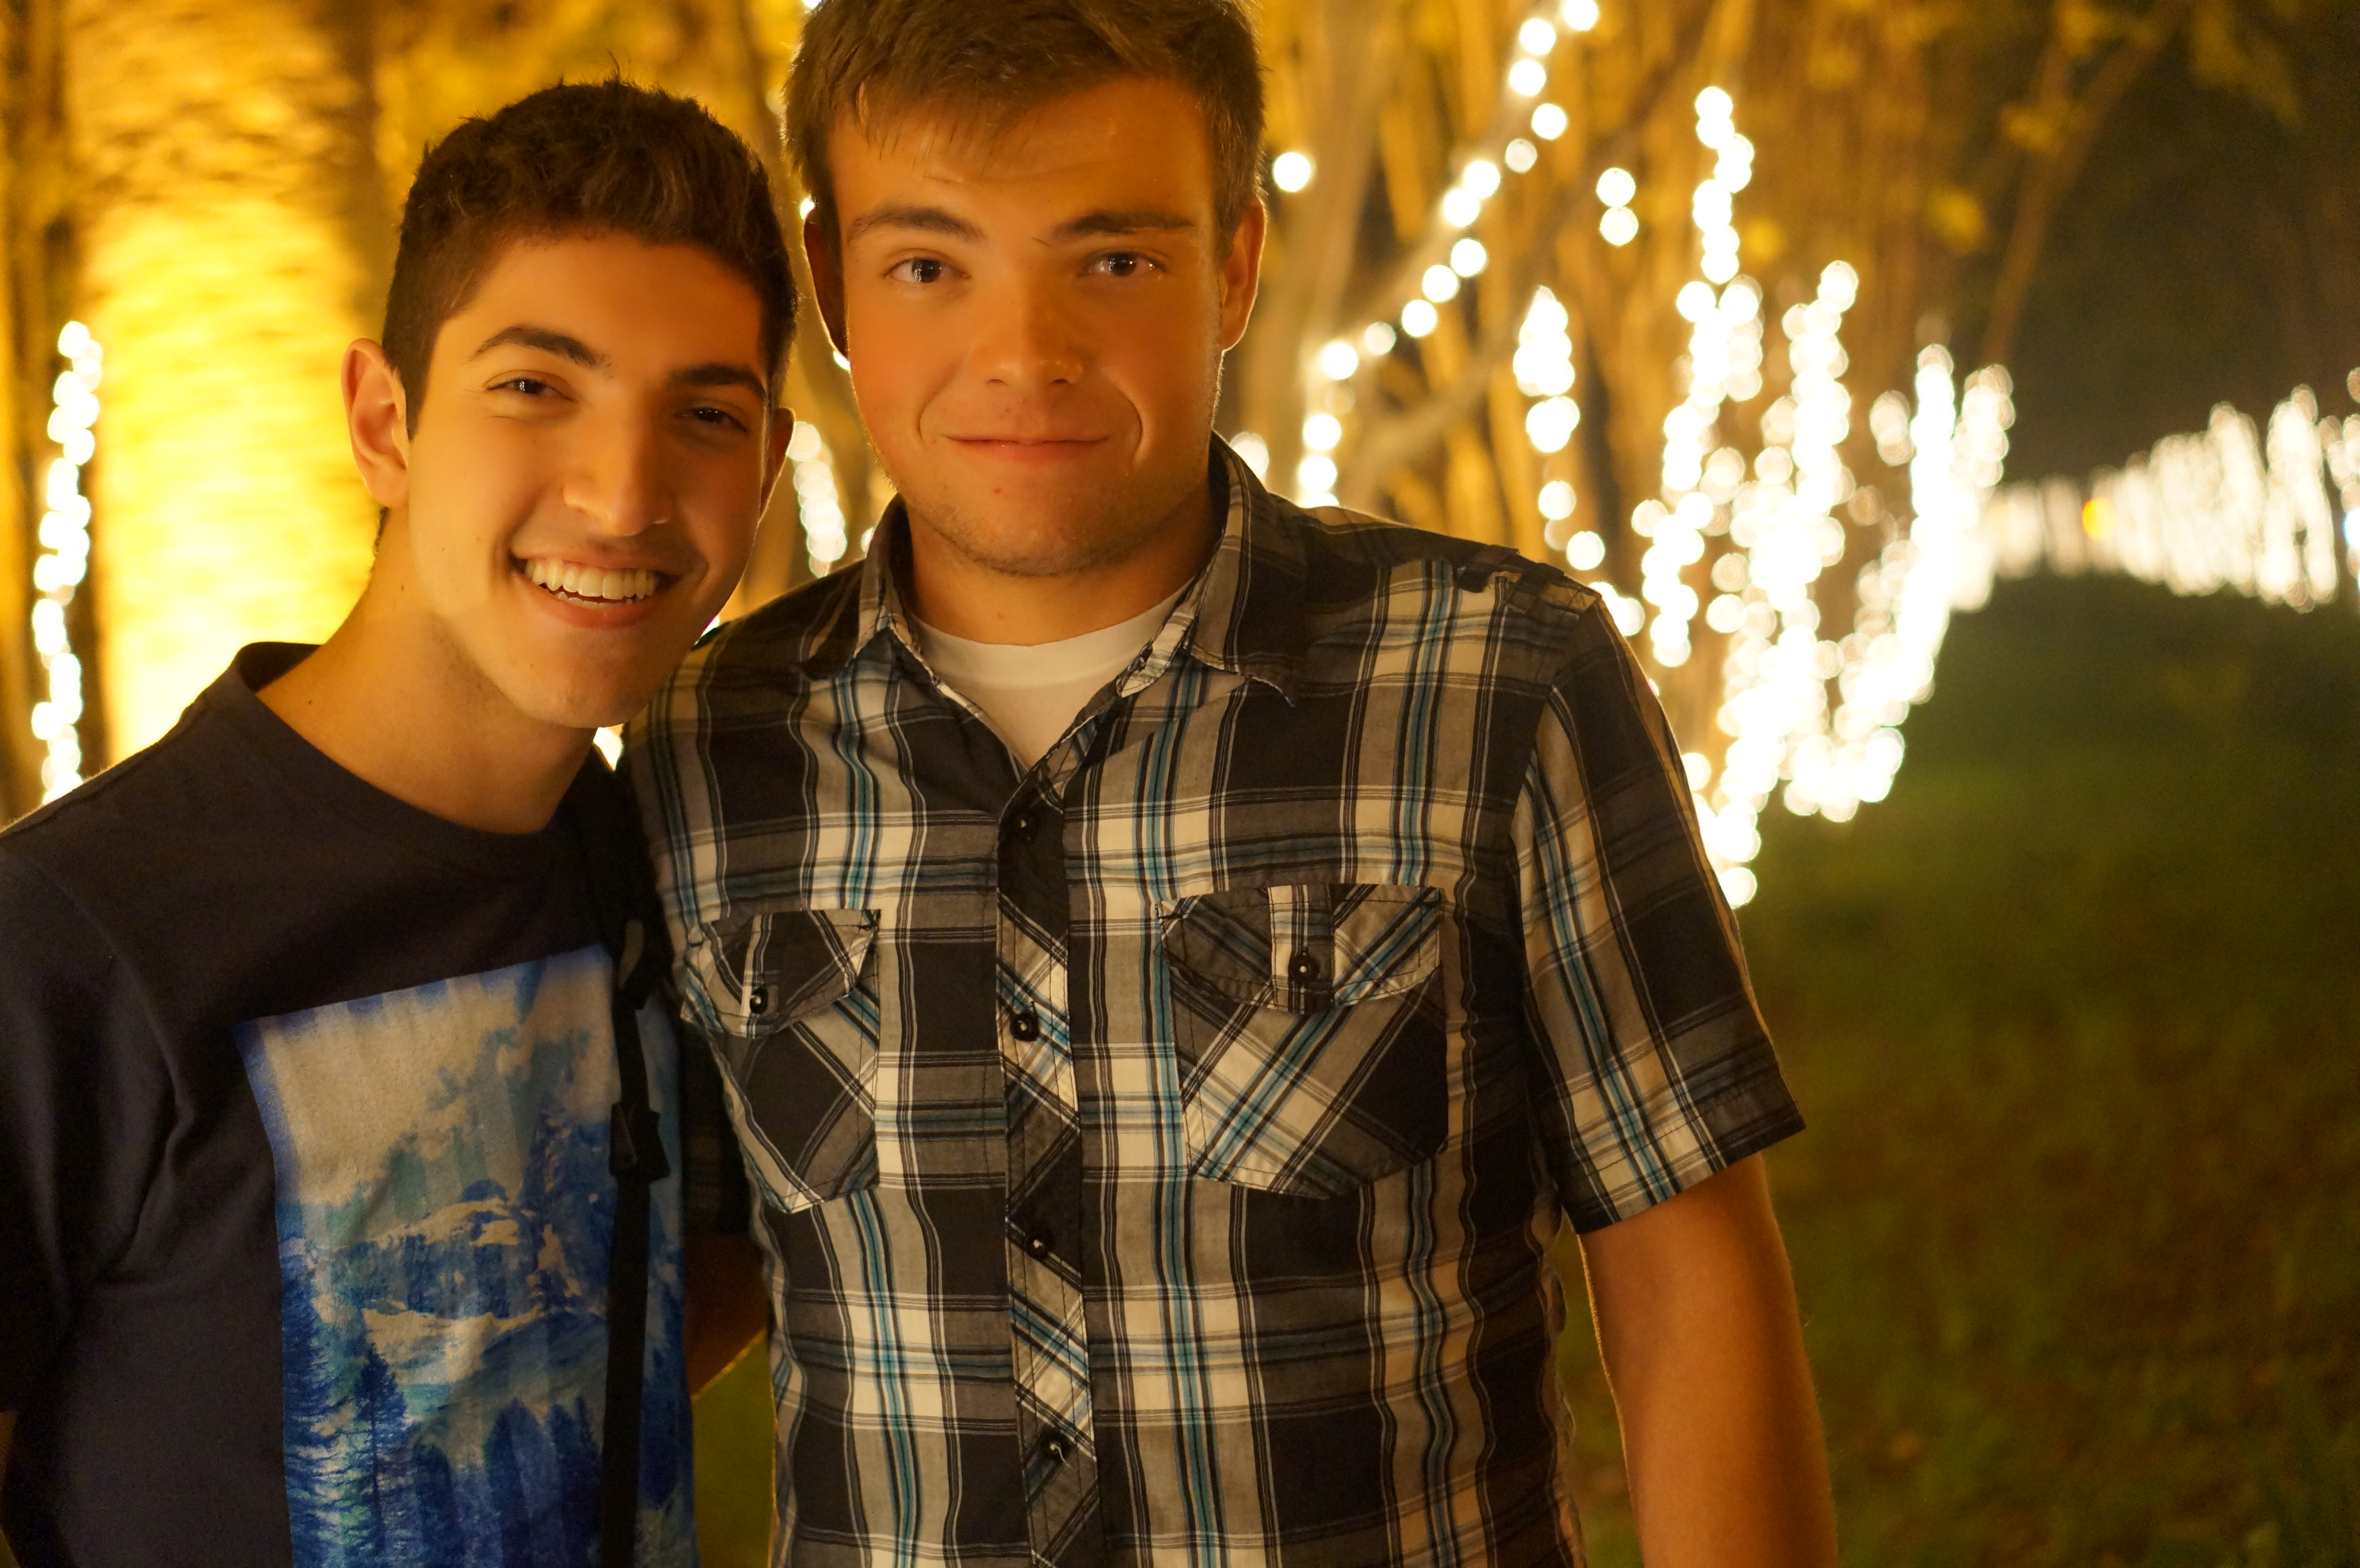 We went to see fireworks together :)